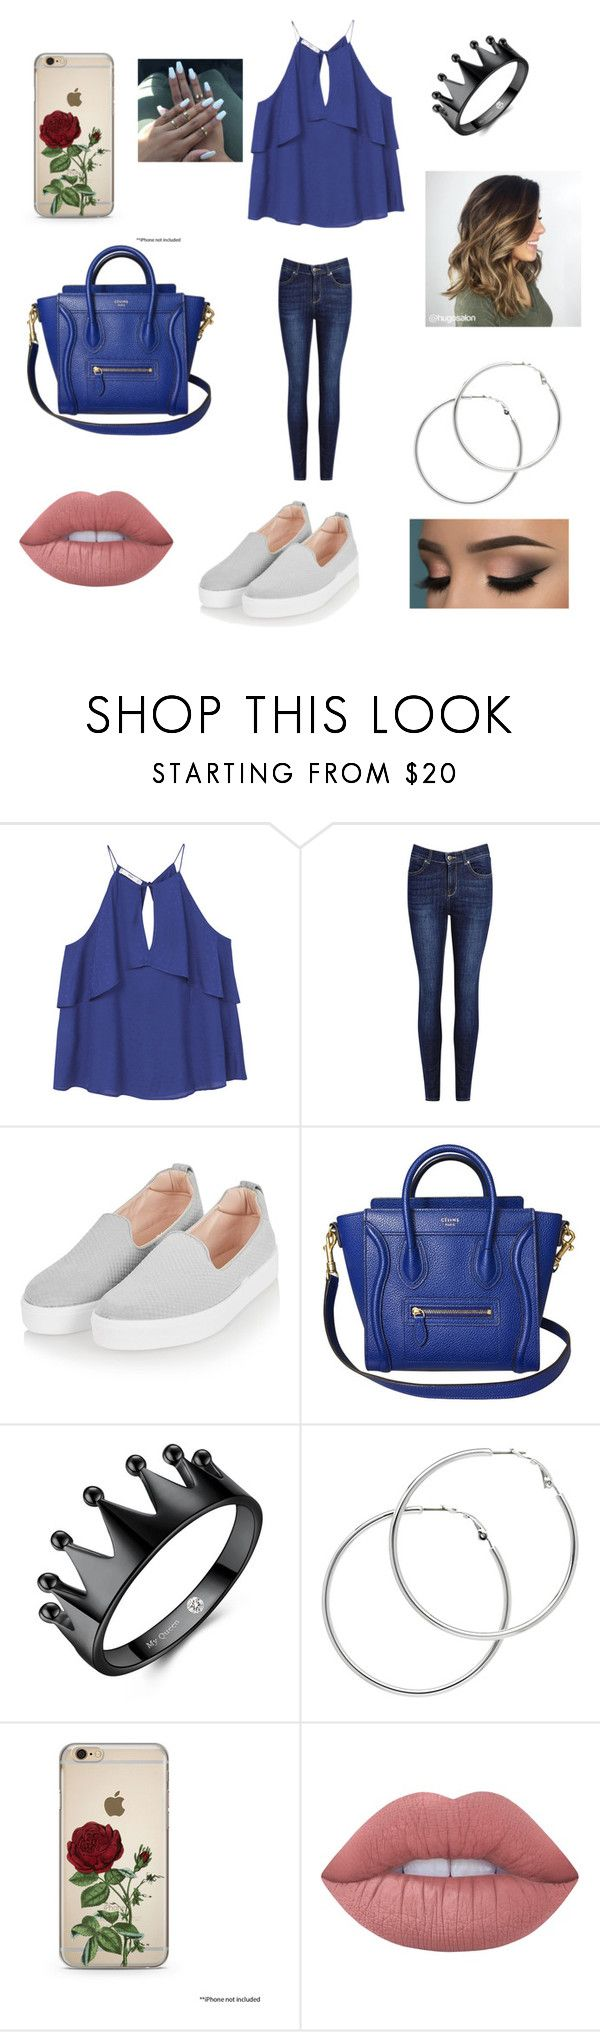 """""""party"""" by elsy25073 on Polyvore featuring moda, MANGO, Topshop, Melissa Odabash y Lime Crime"""